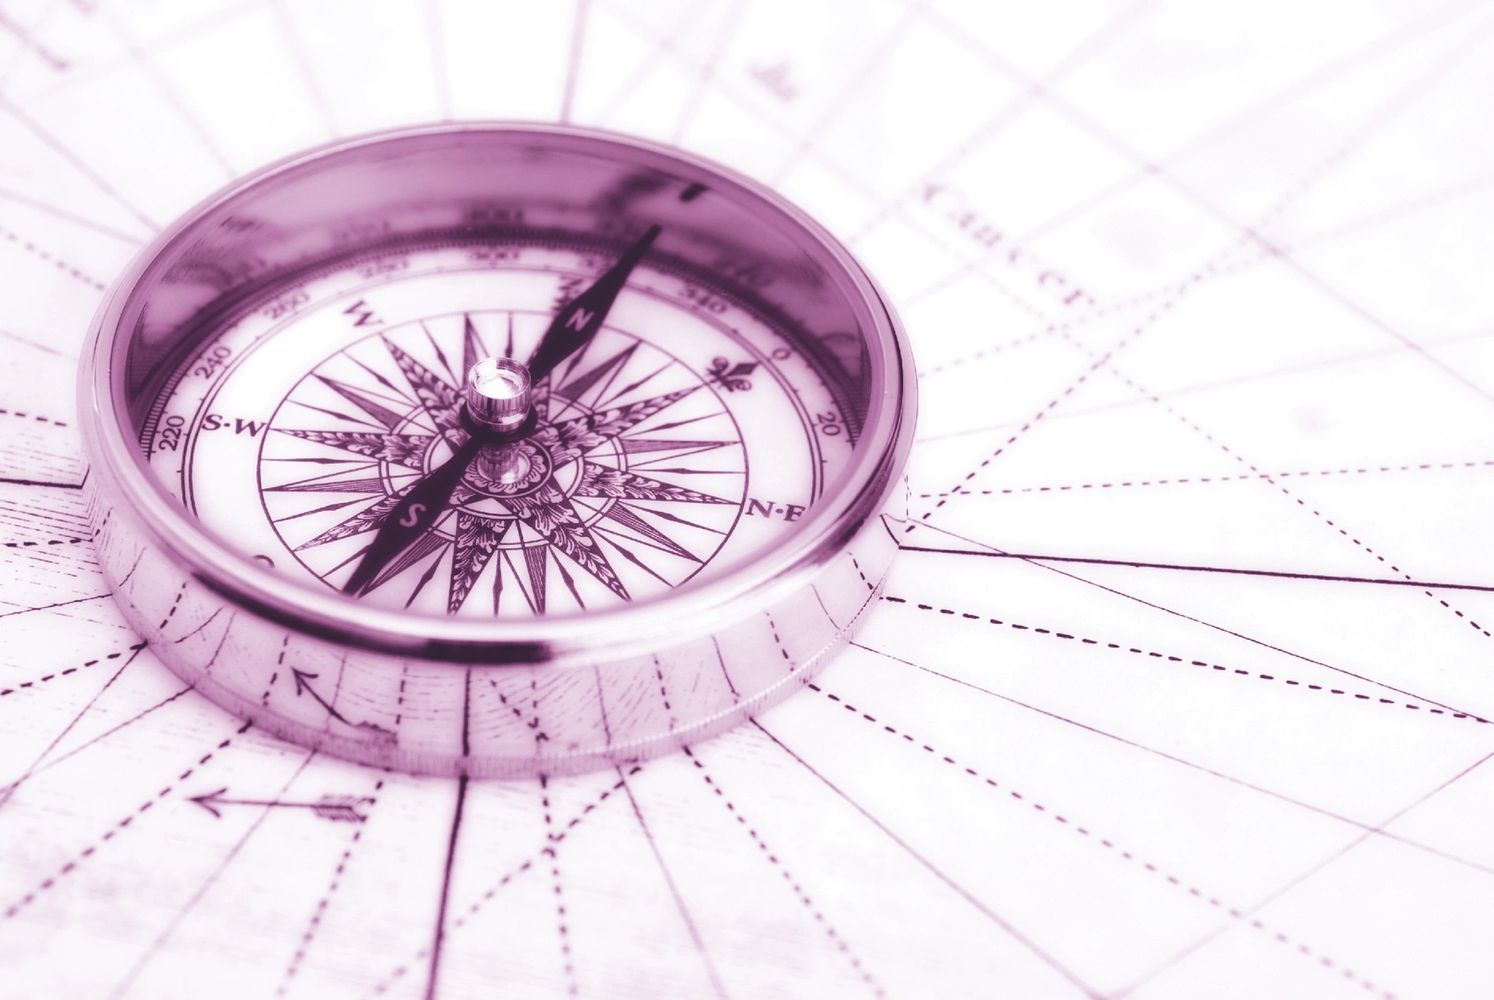 Compass pointing to True North, most common navigation tool for travelers, aimed at fixed point